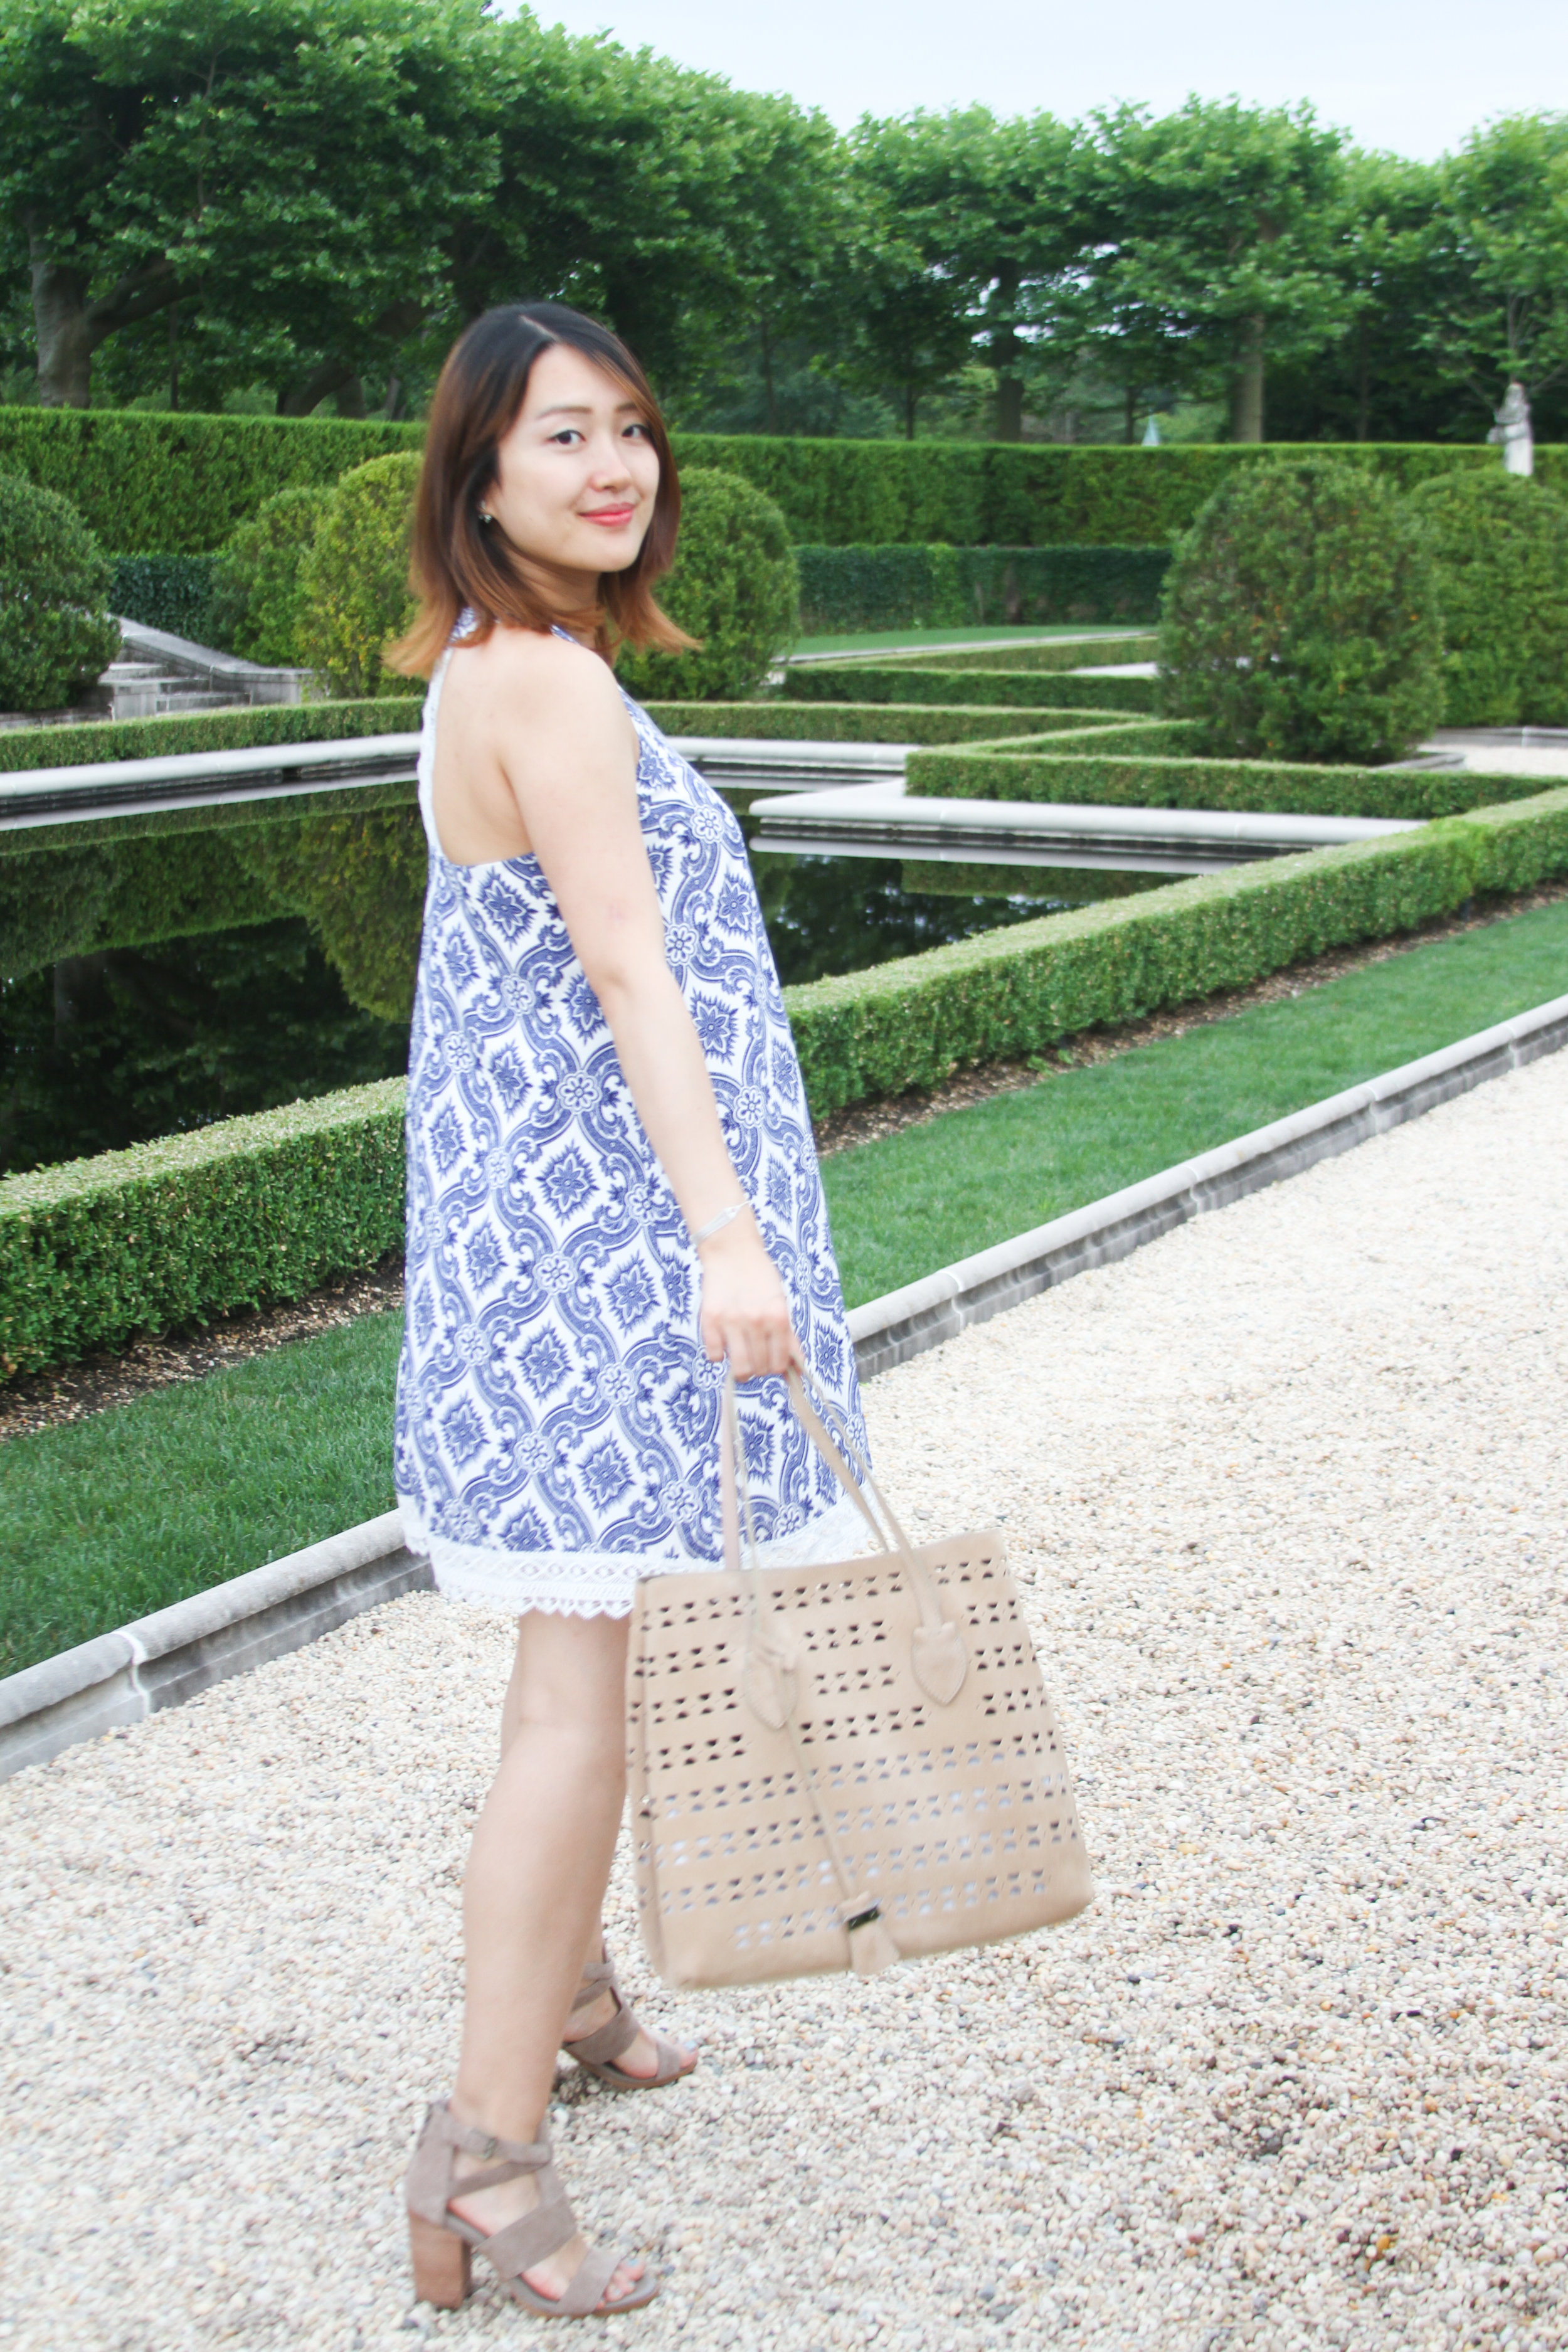 junelemongirl, fashion blogger,new york fashion blogger, june lemon girl, long island, oheka castle, blue dress, printed dress, Soieblu, printed shift dress, tile print dress, porceline print dress, lace dress, perforated tote, coccinelle bag, TOTE BAG IN PERFORATED SUEDE, suede tote bag, beige tote bag style, suede chunky sandals, hinge sandals, 'Cora' Block Heel Sandal, taupe sandals, new york street style, ootd, summer street fashion, a line dress, maternity look, maternity dress, mom style